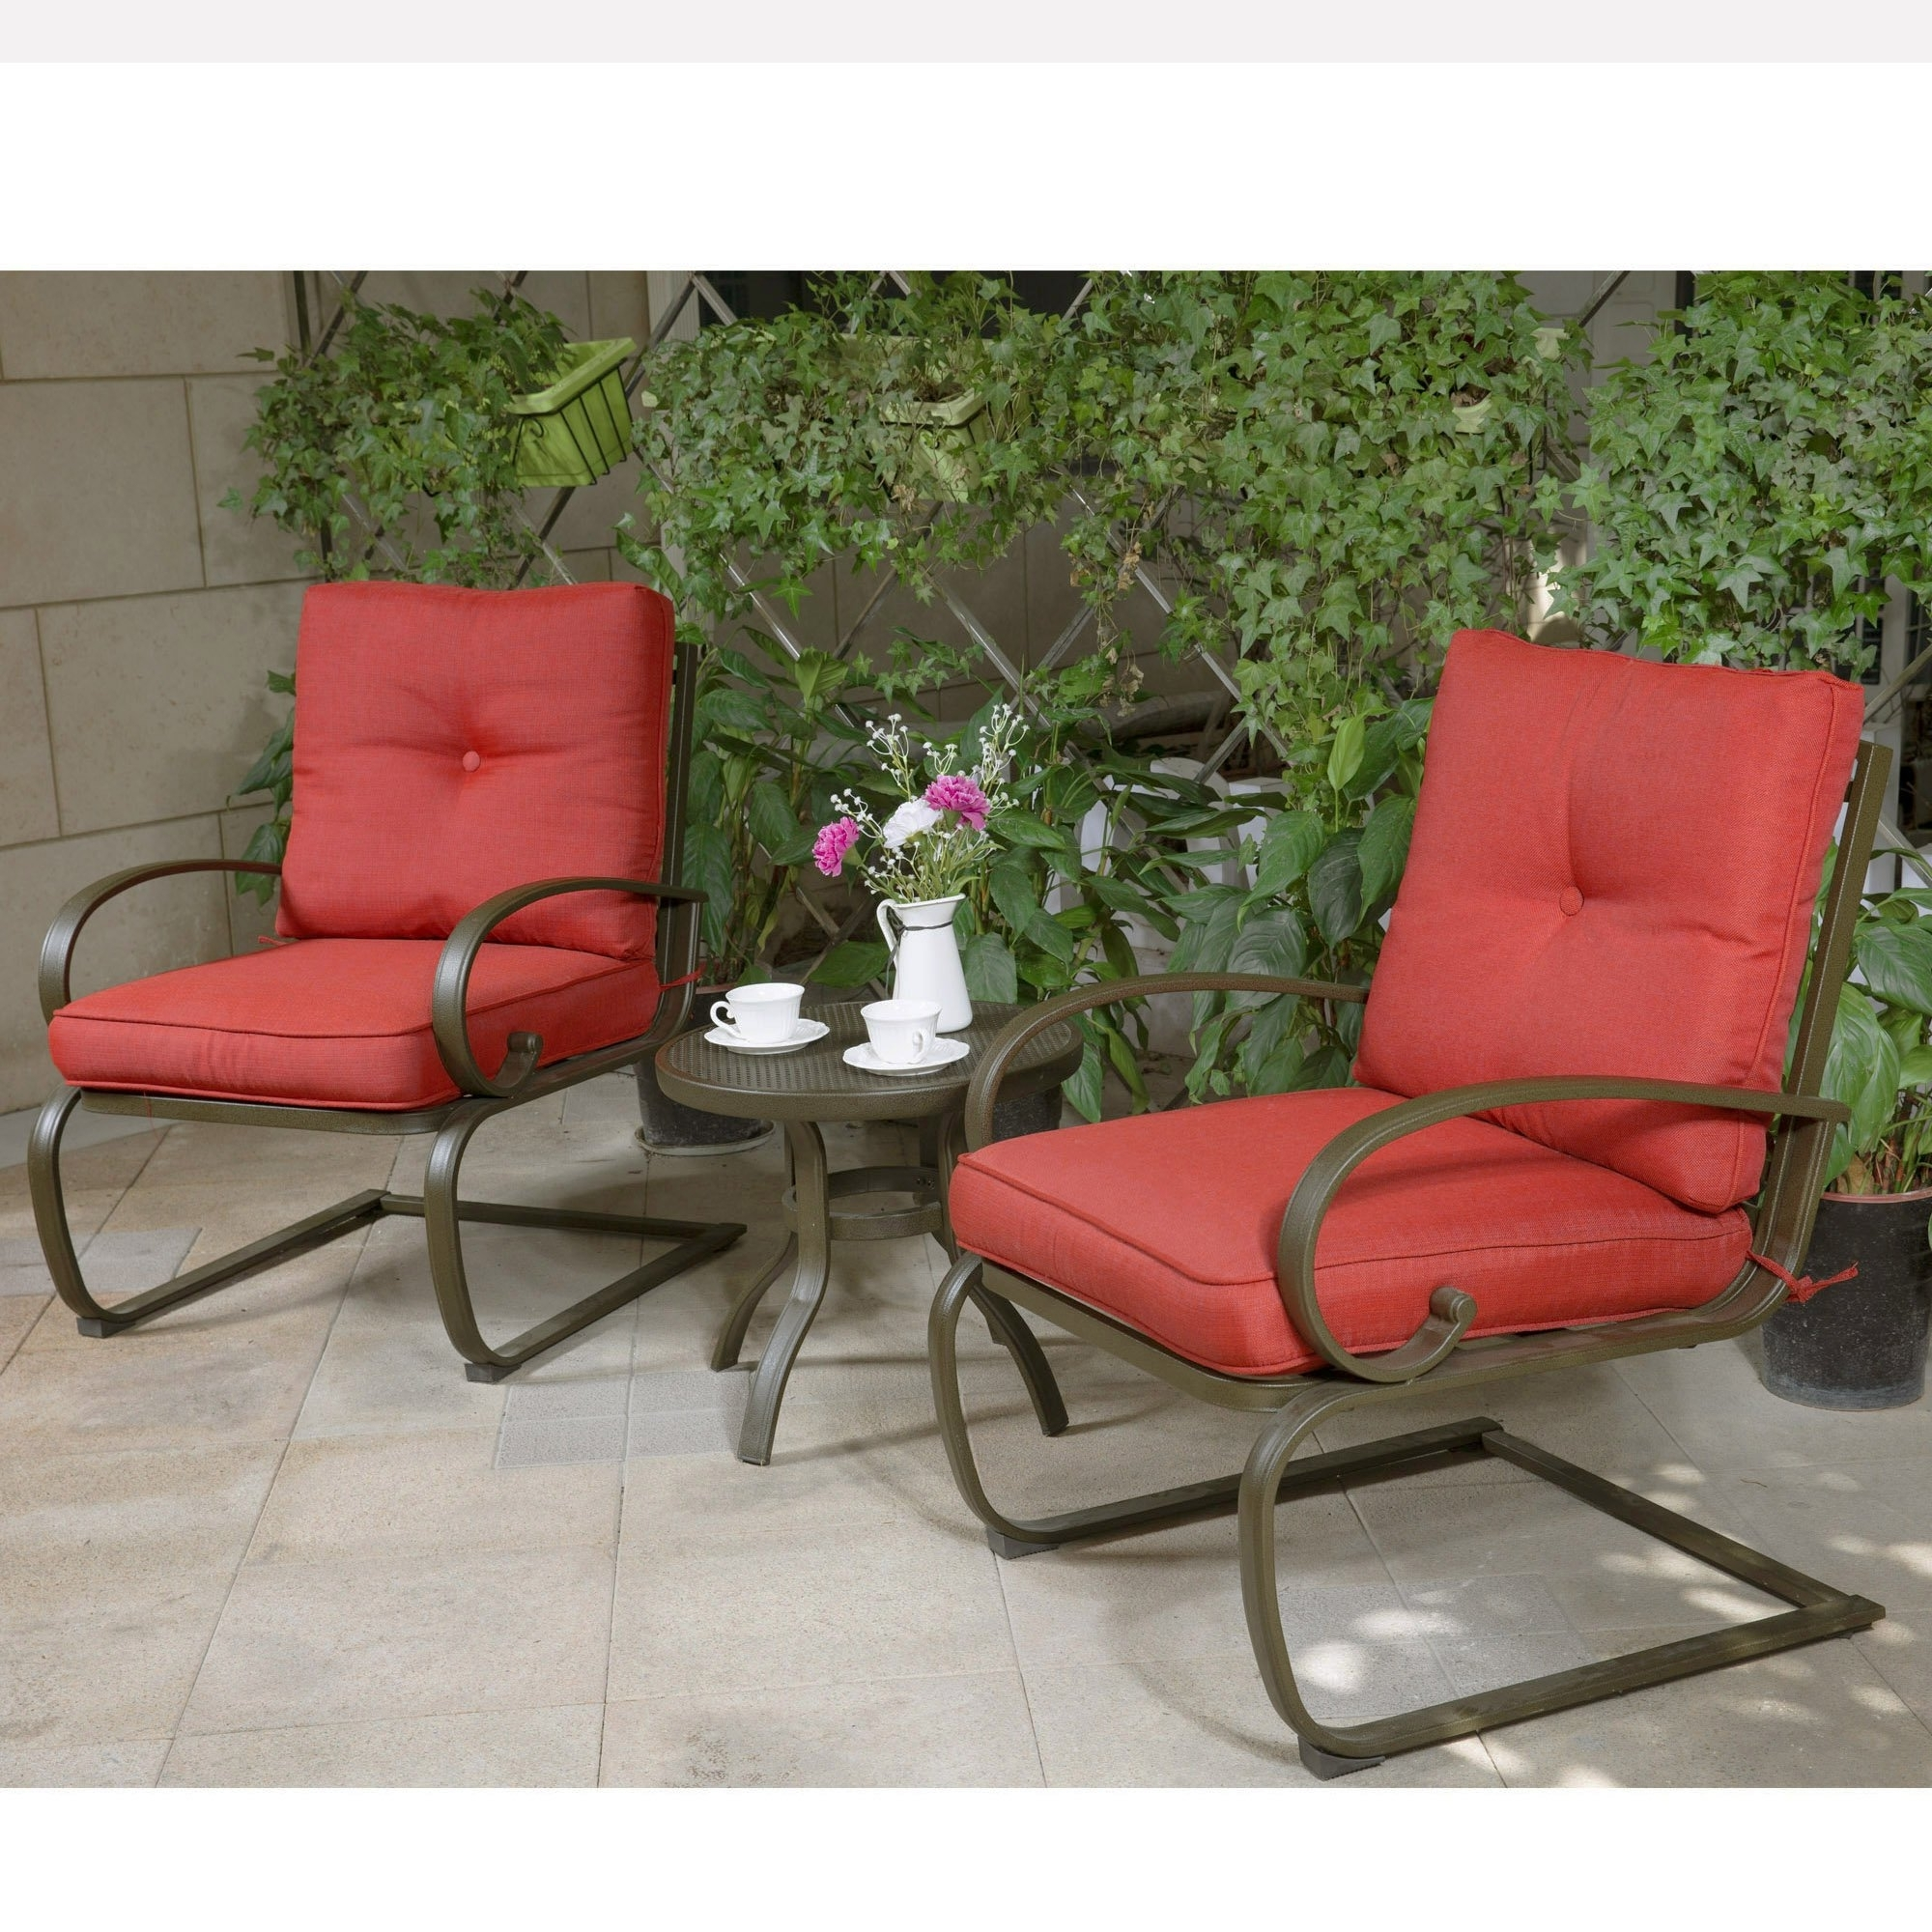 Garten Storm Chairs With Espresso Finish Set Of 2 Throughout Current Best Rated In Patio Furniture Sets & Helpful Customer Reviews (View 13 of 20)